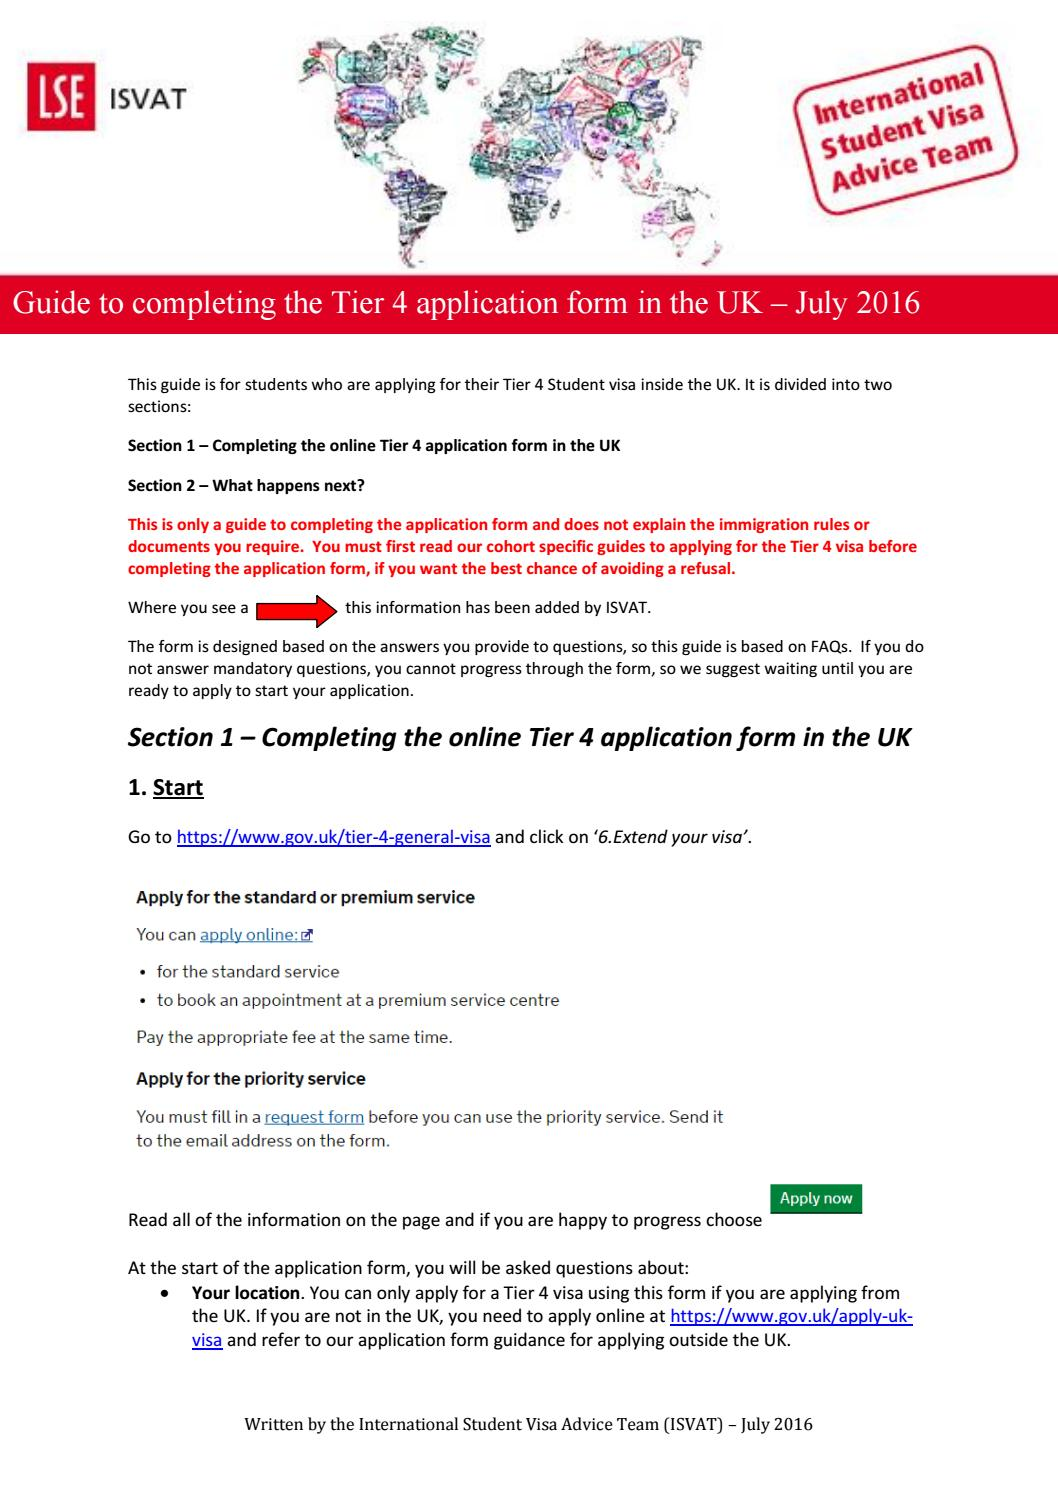 Isvat guide to completing the tier 4 application form in the uk by isvat guide to completing the tier 4 application form in the uk by lse international student visa advice team issuu falaconquin